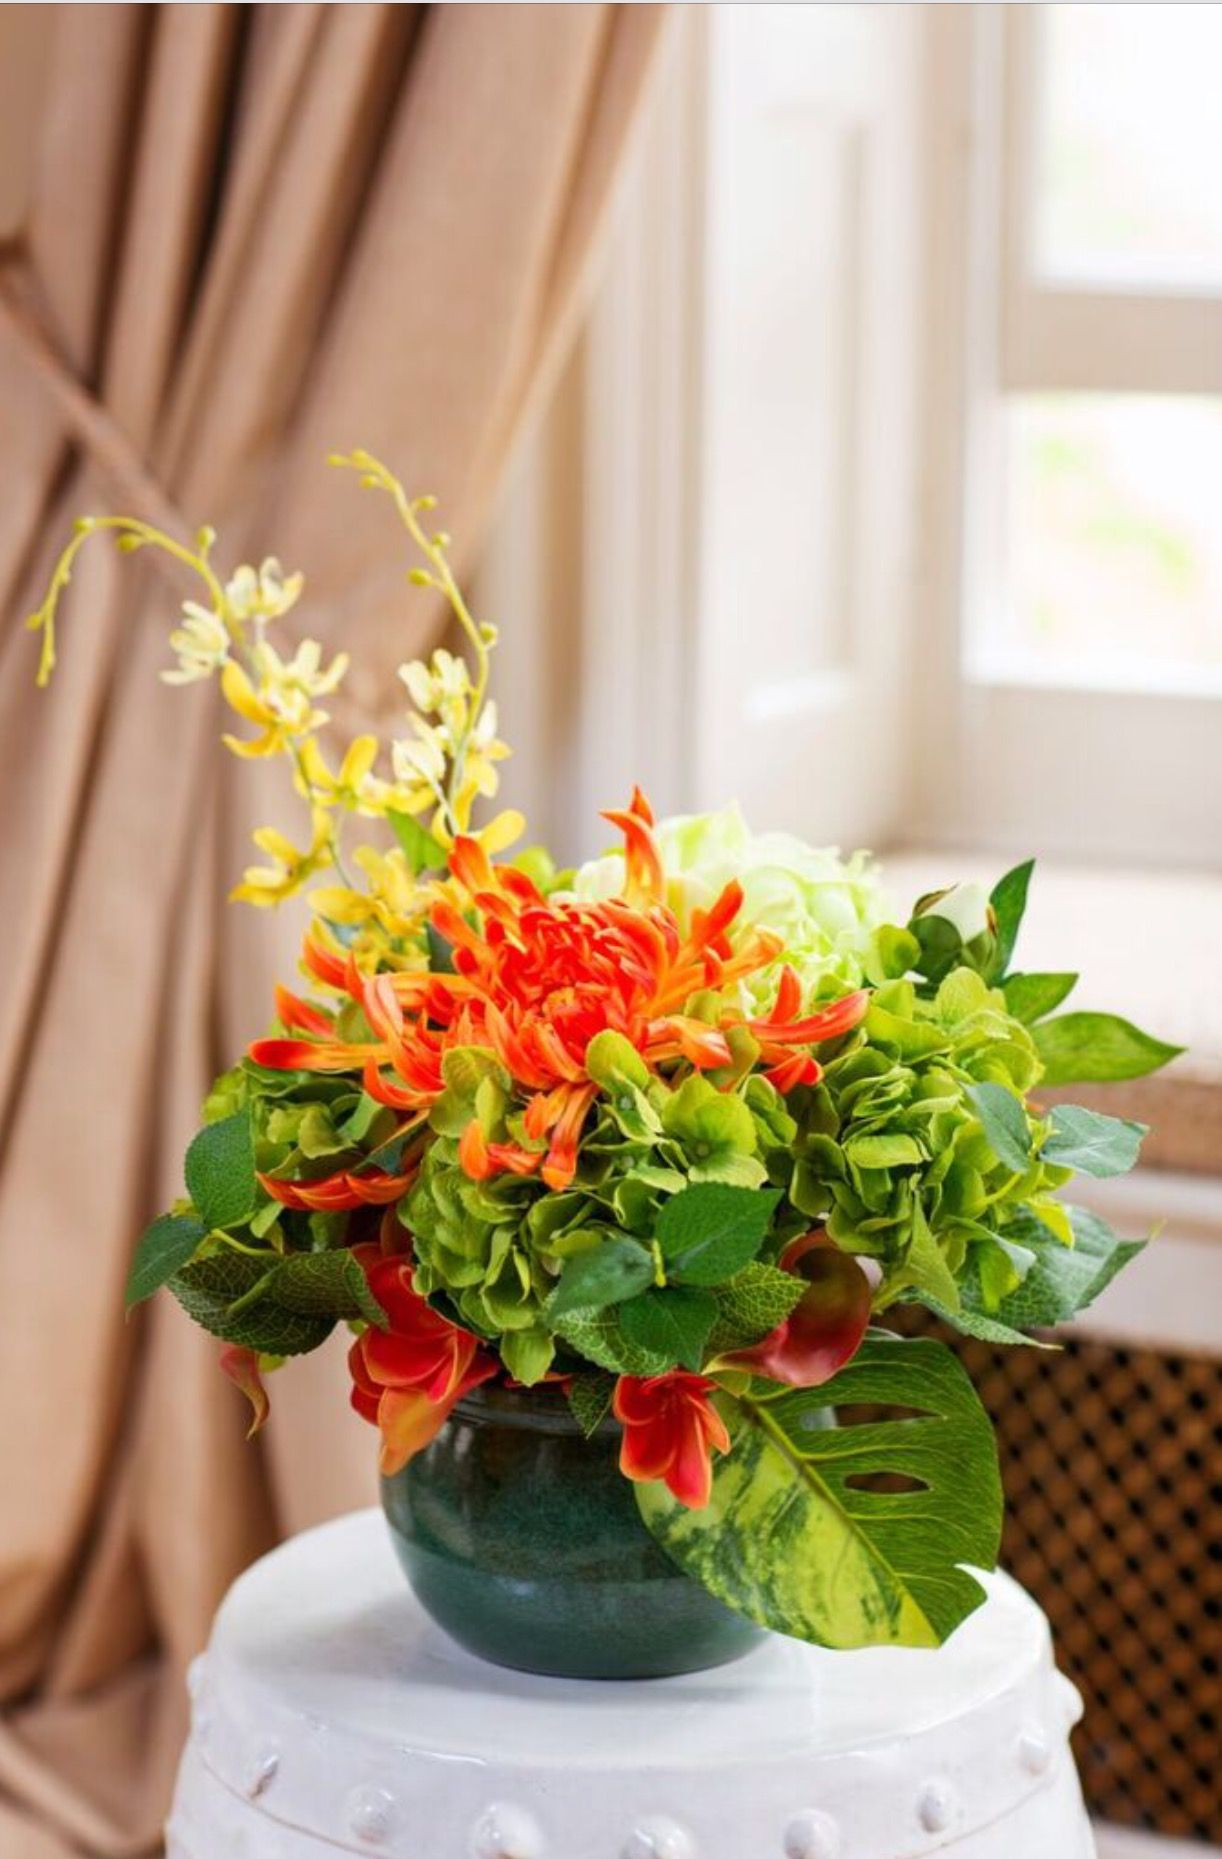 We offer monthly flower delivery service providing you with the we offer monthly flower delivery service providing you with the highest quality corporate flower mightylinksfo